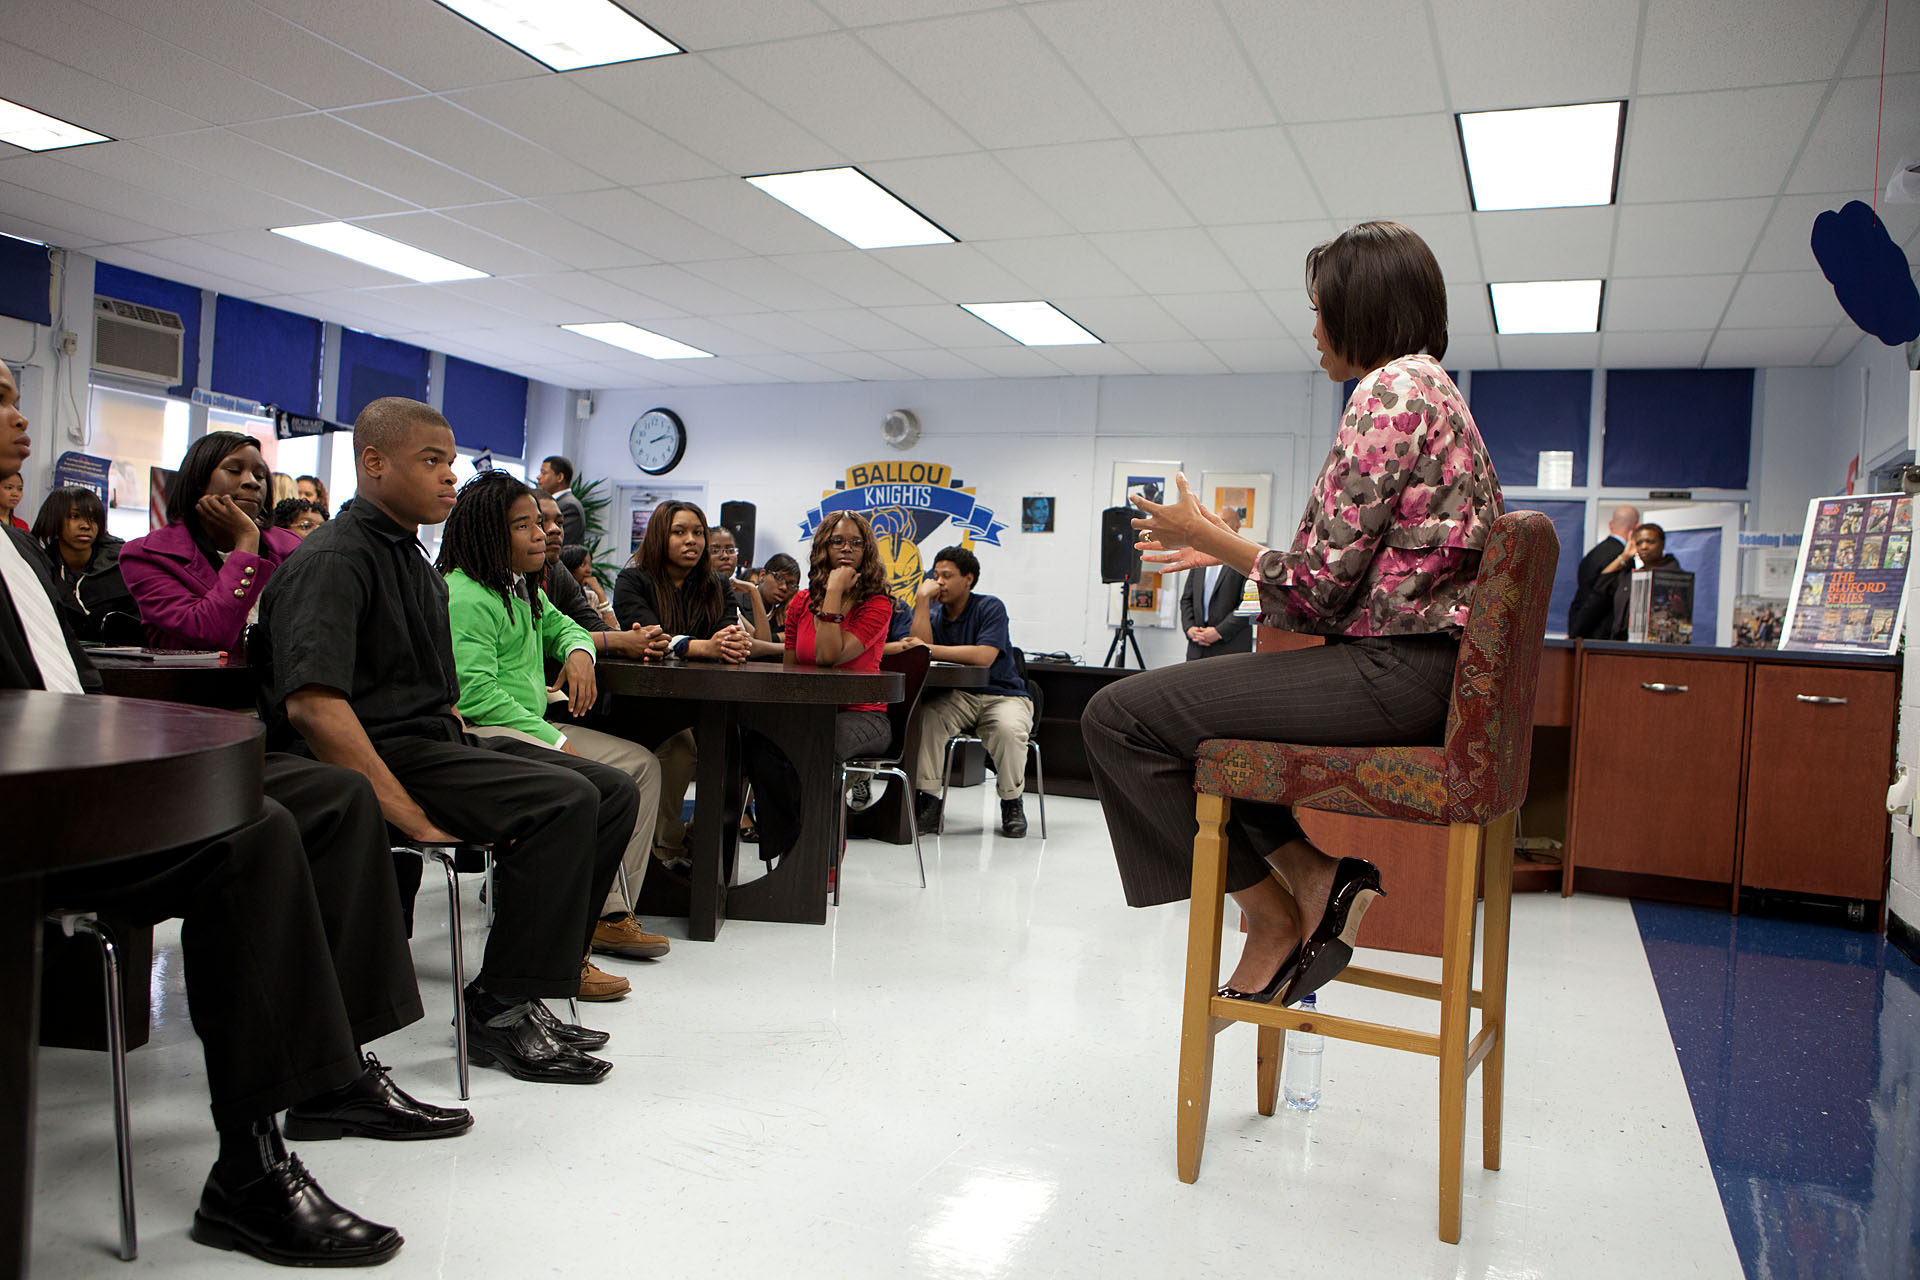 First Lady Speaks at Ballou High School